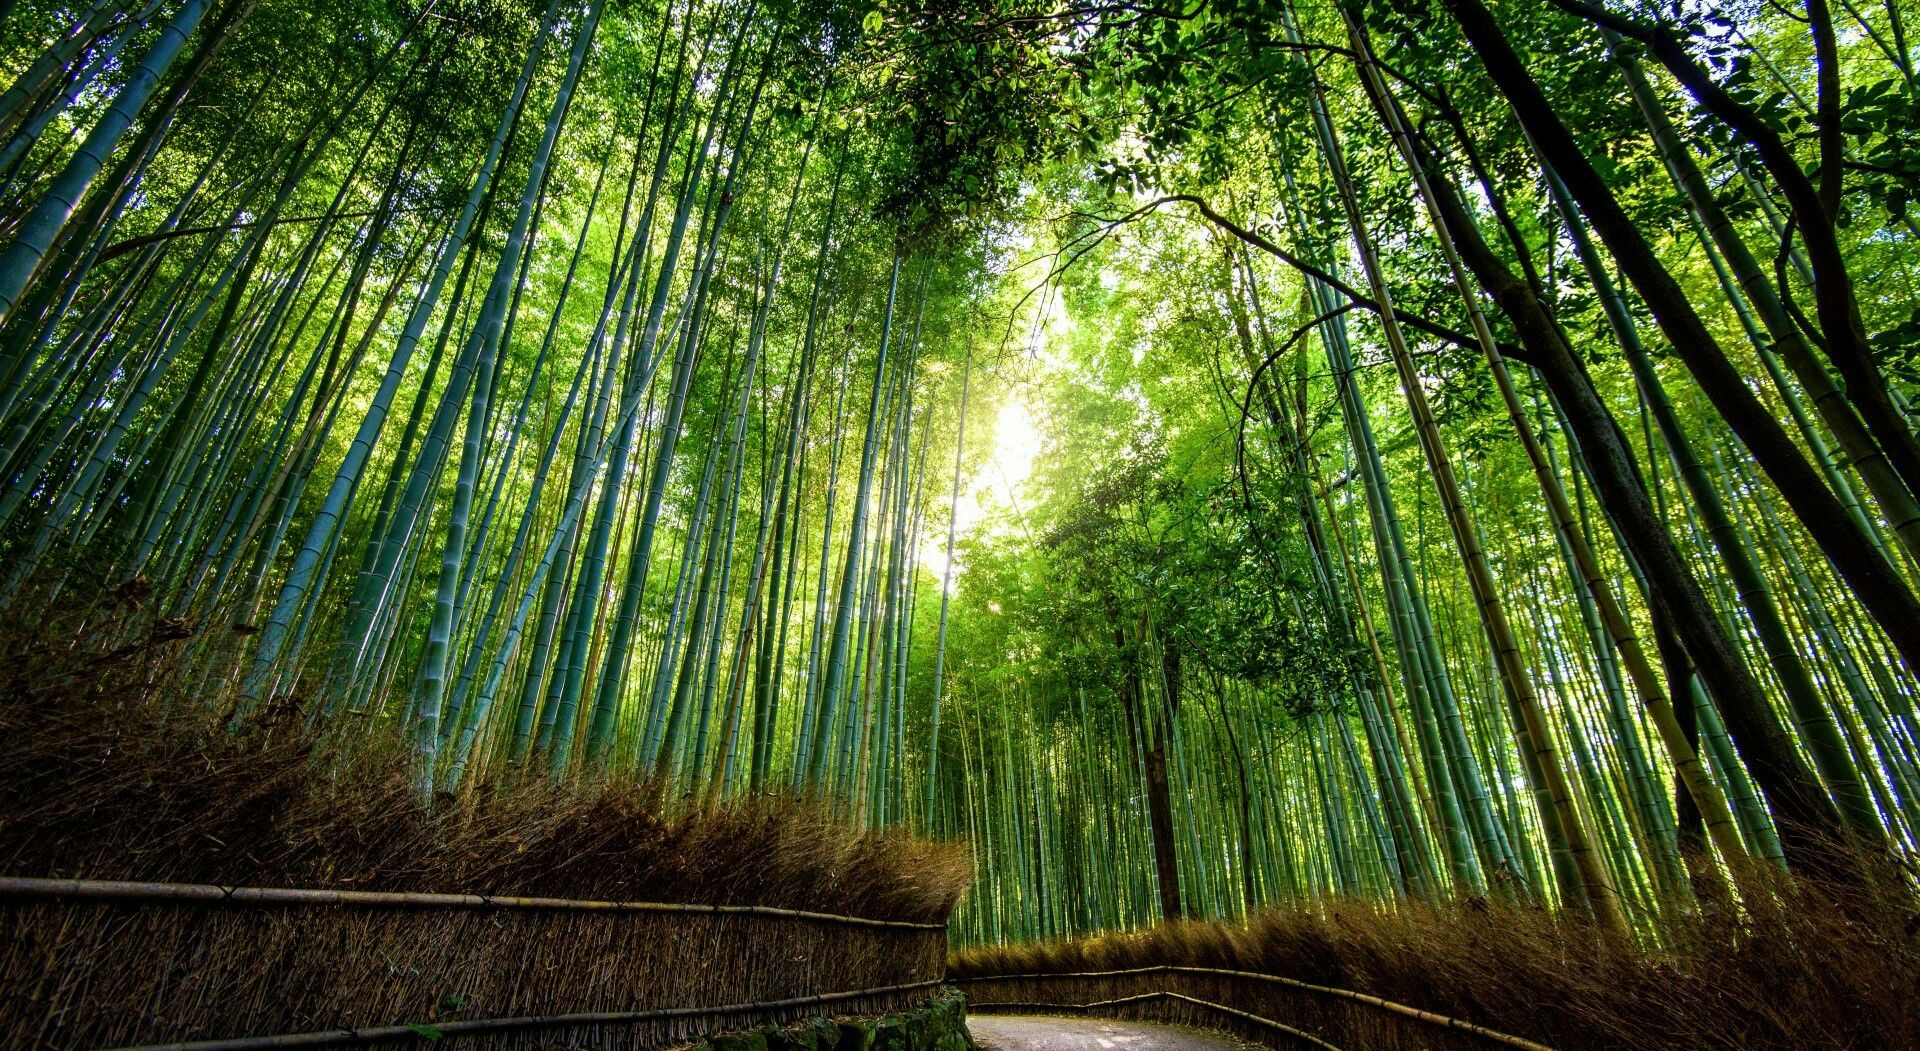 Bamboo Field Nature Wallpaper Hd Nature Wallpapers Japan